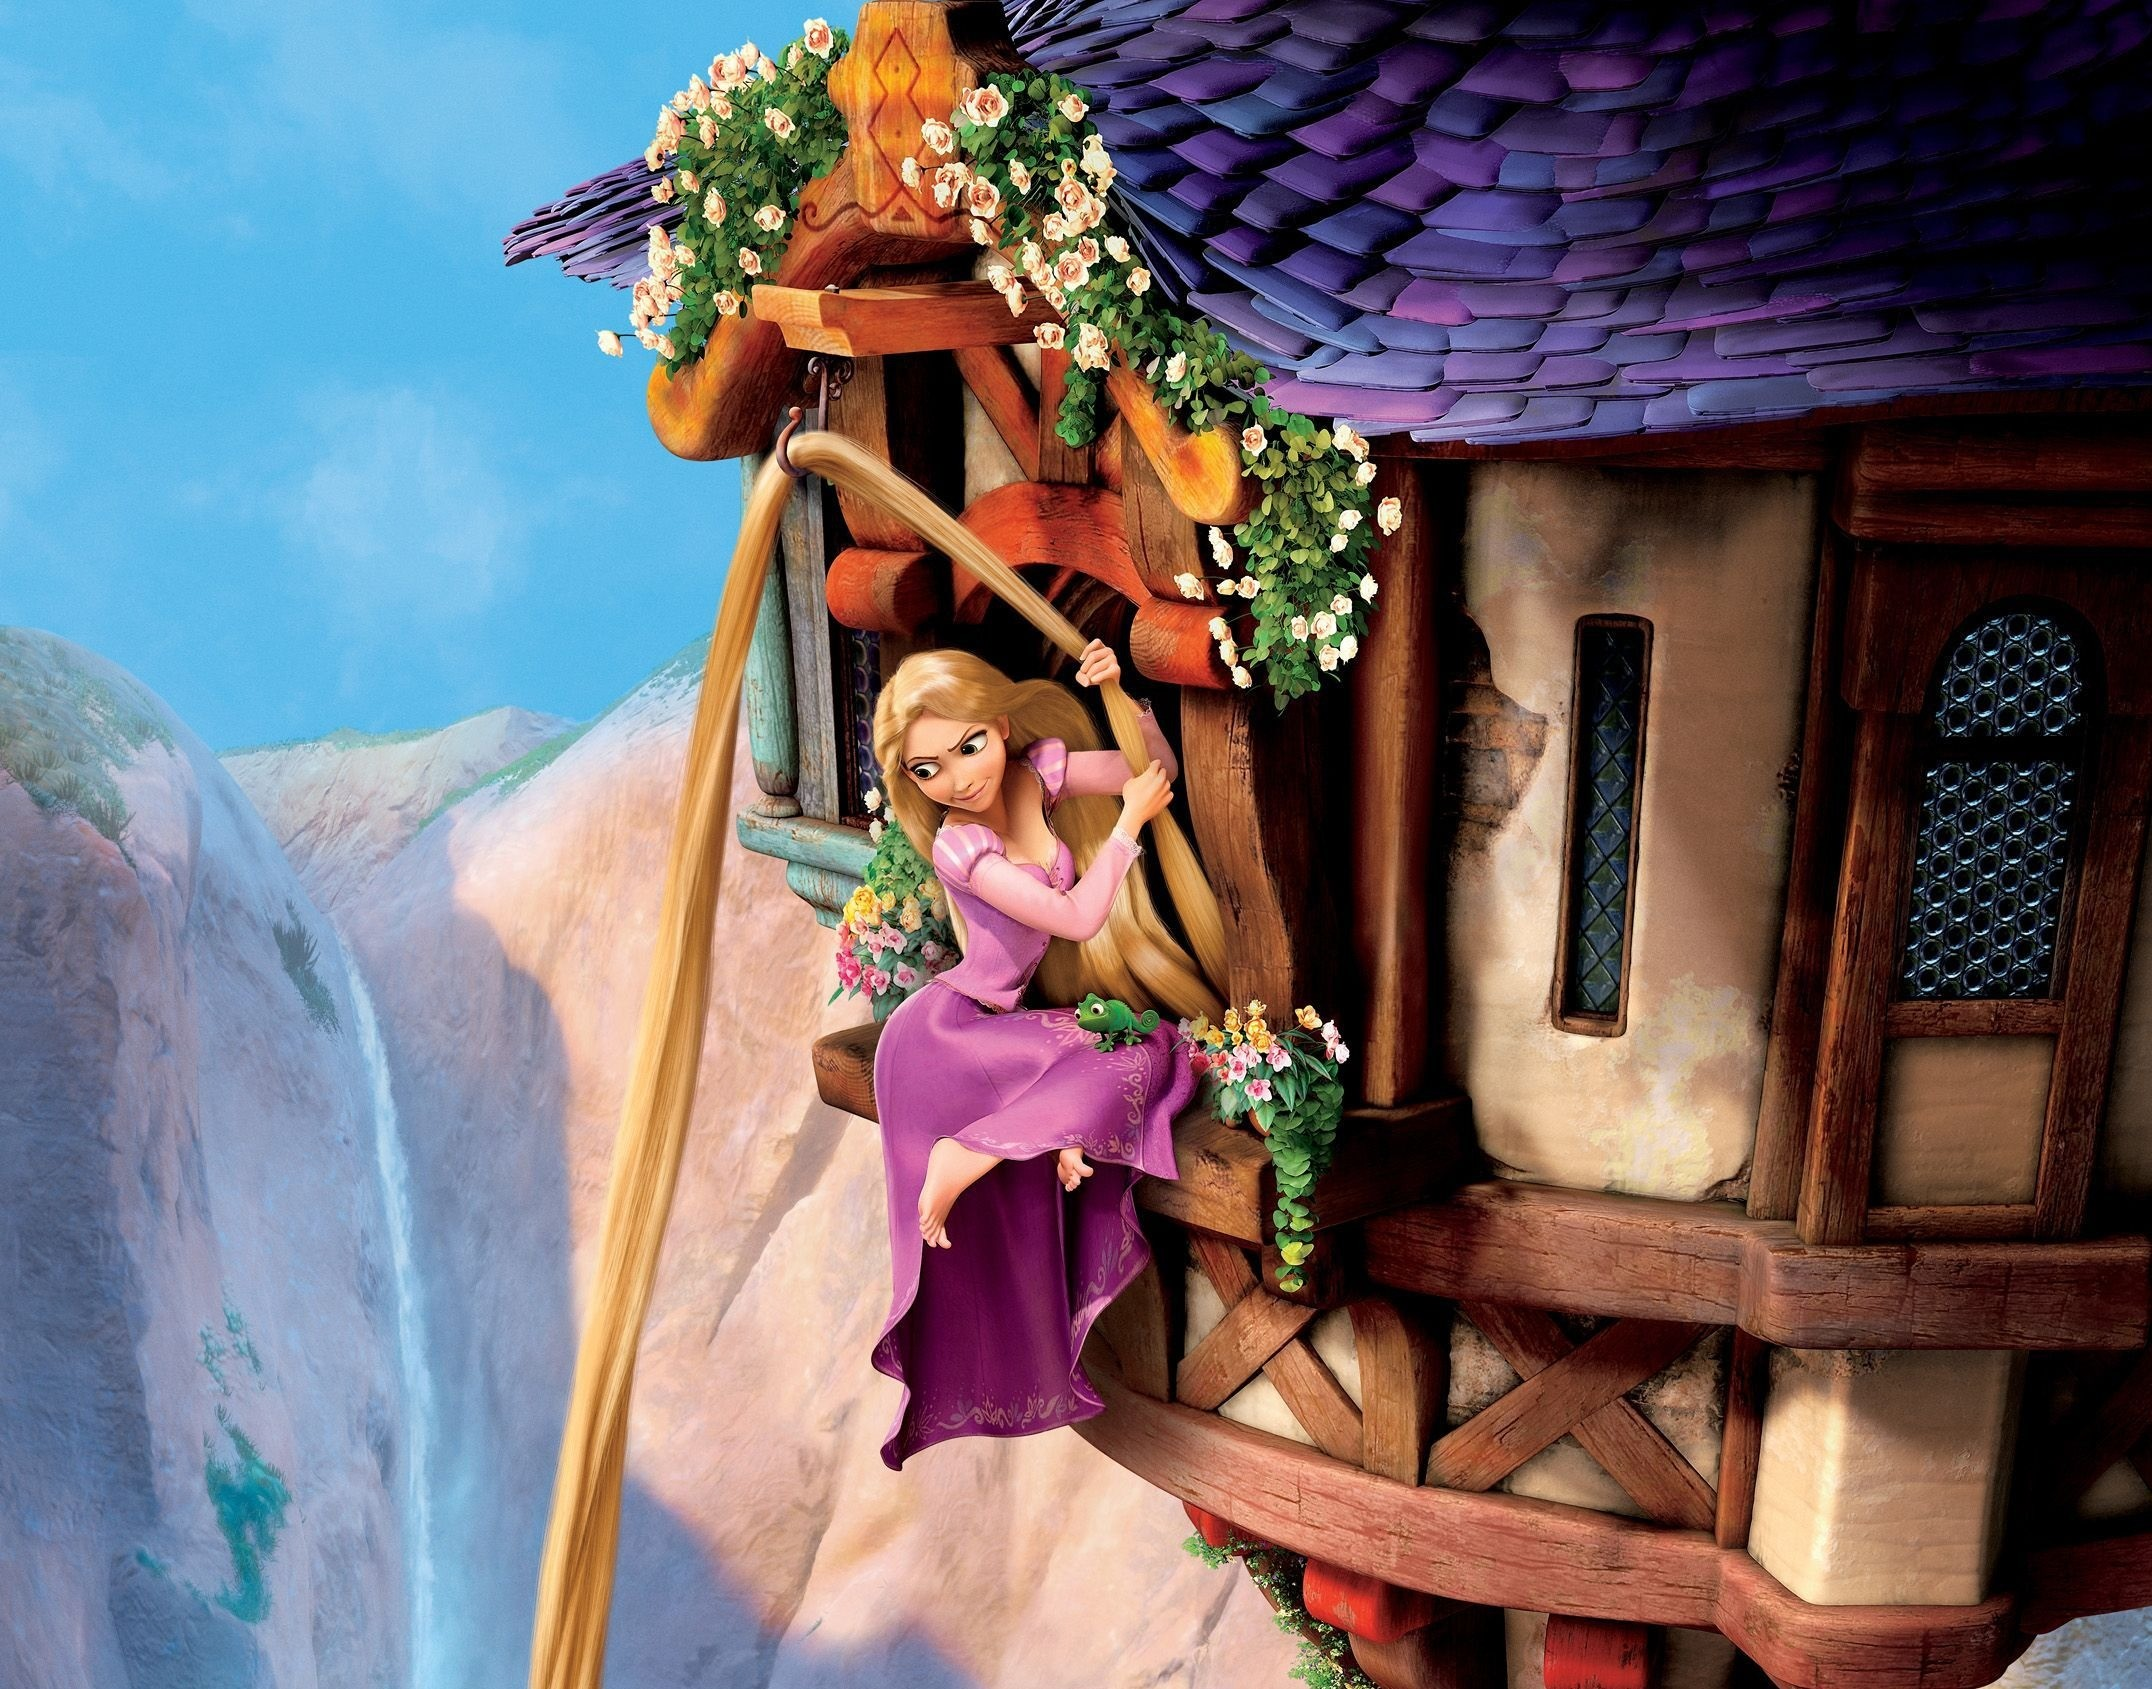 Related Wallpapers. Tangled, complex story, Rapunzel, Princess, Goldilocks,  castle, tower, window